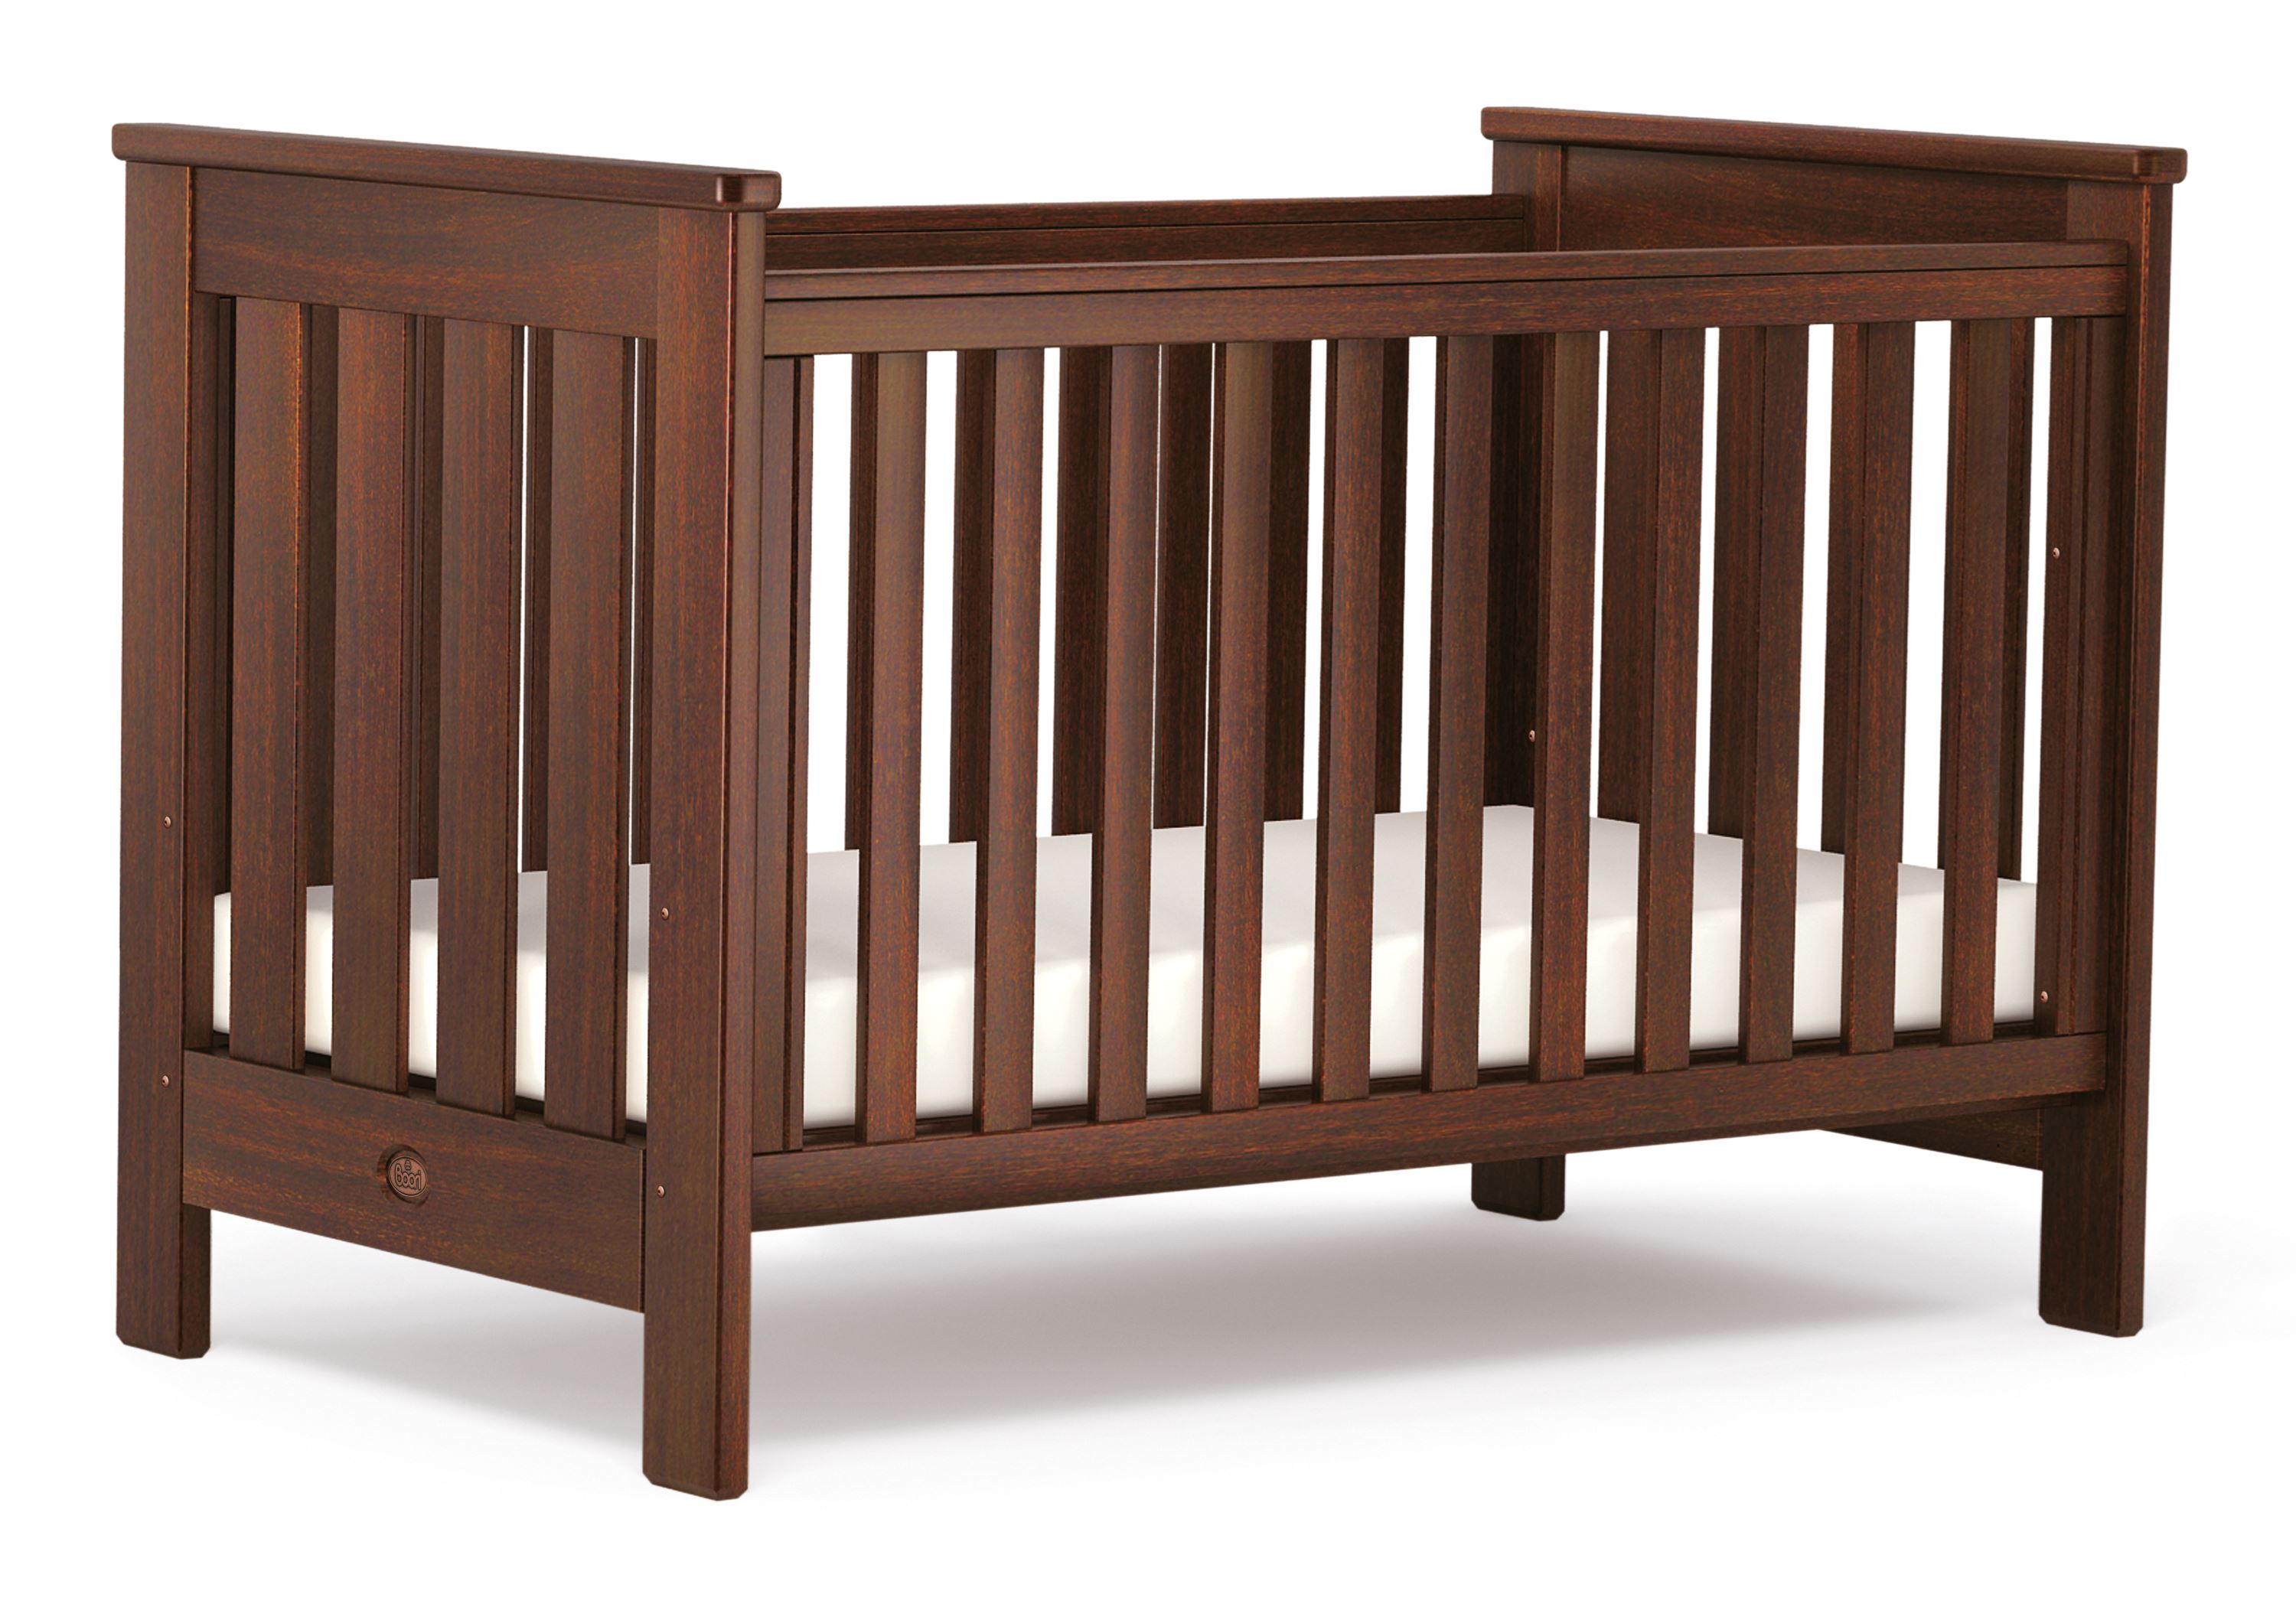 Pioneer Cot bed (Dropside) - English Oak